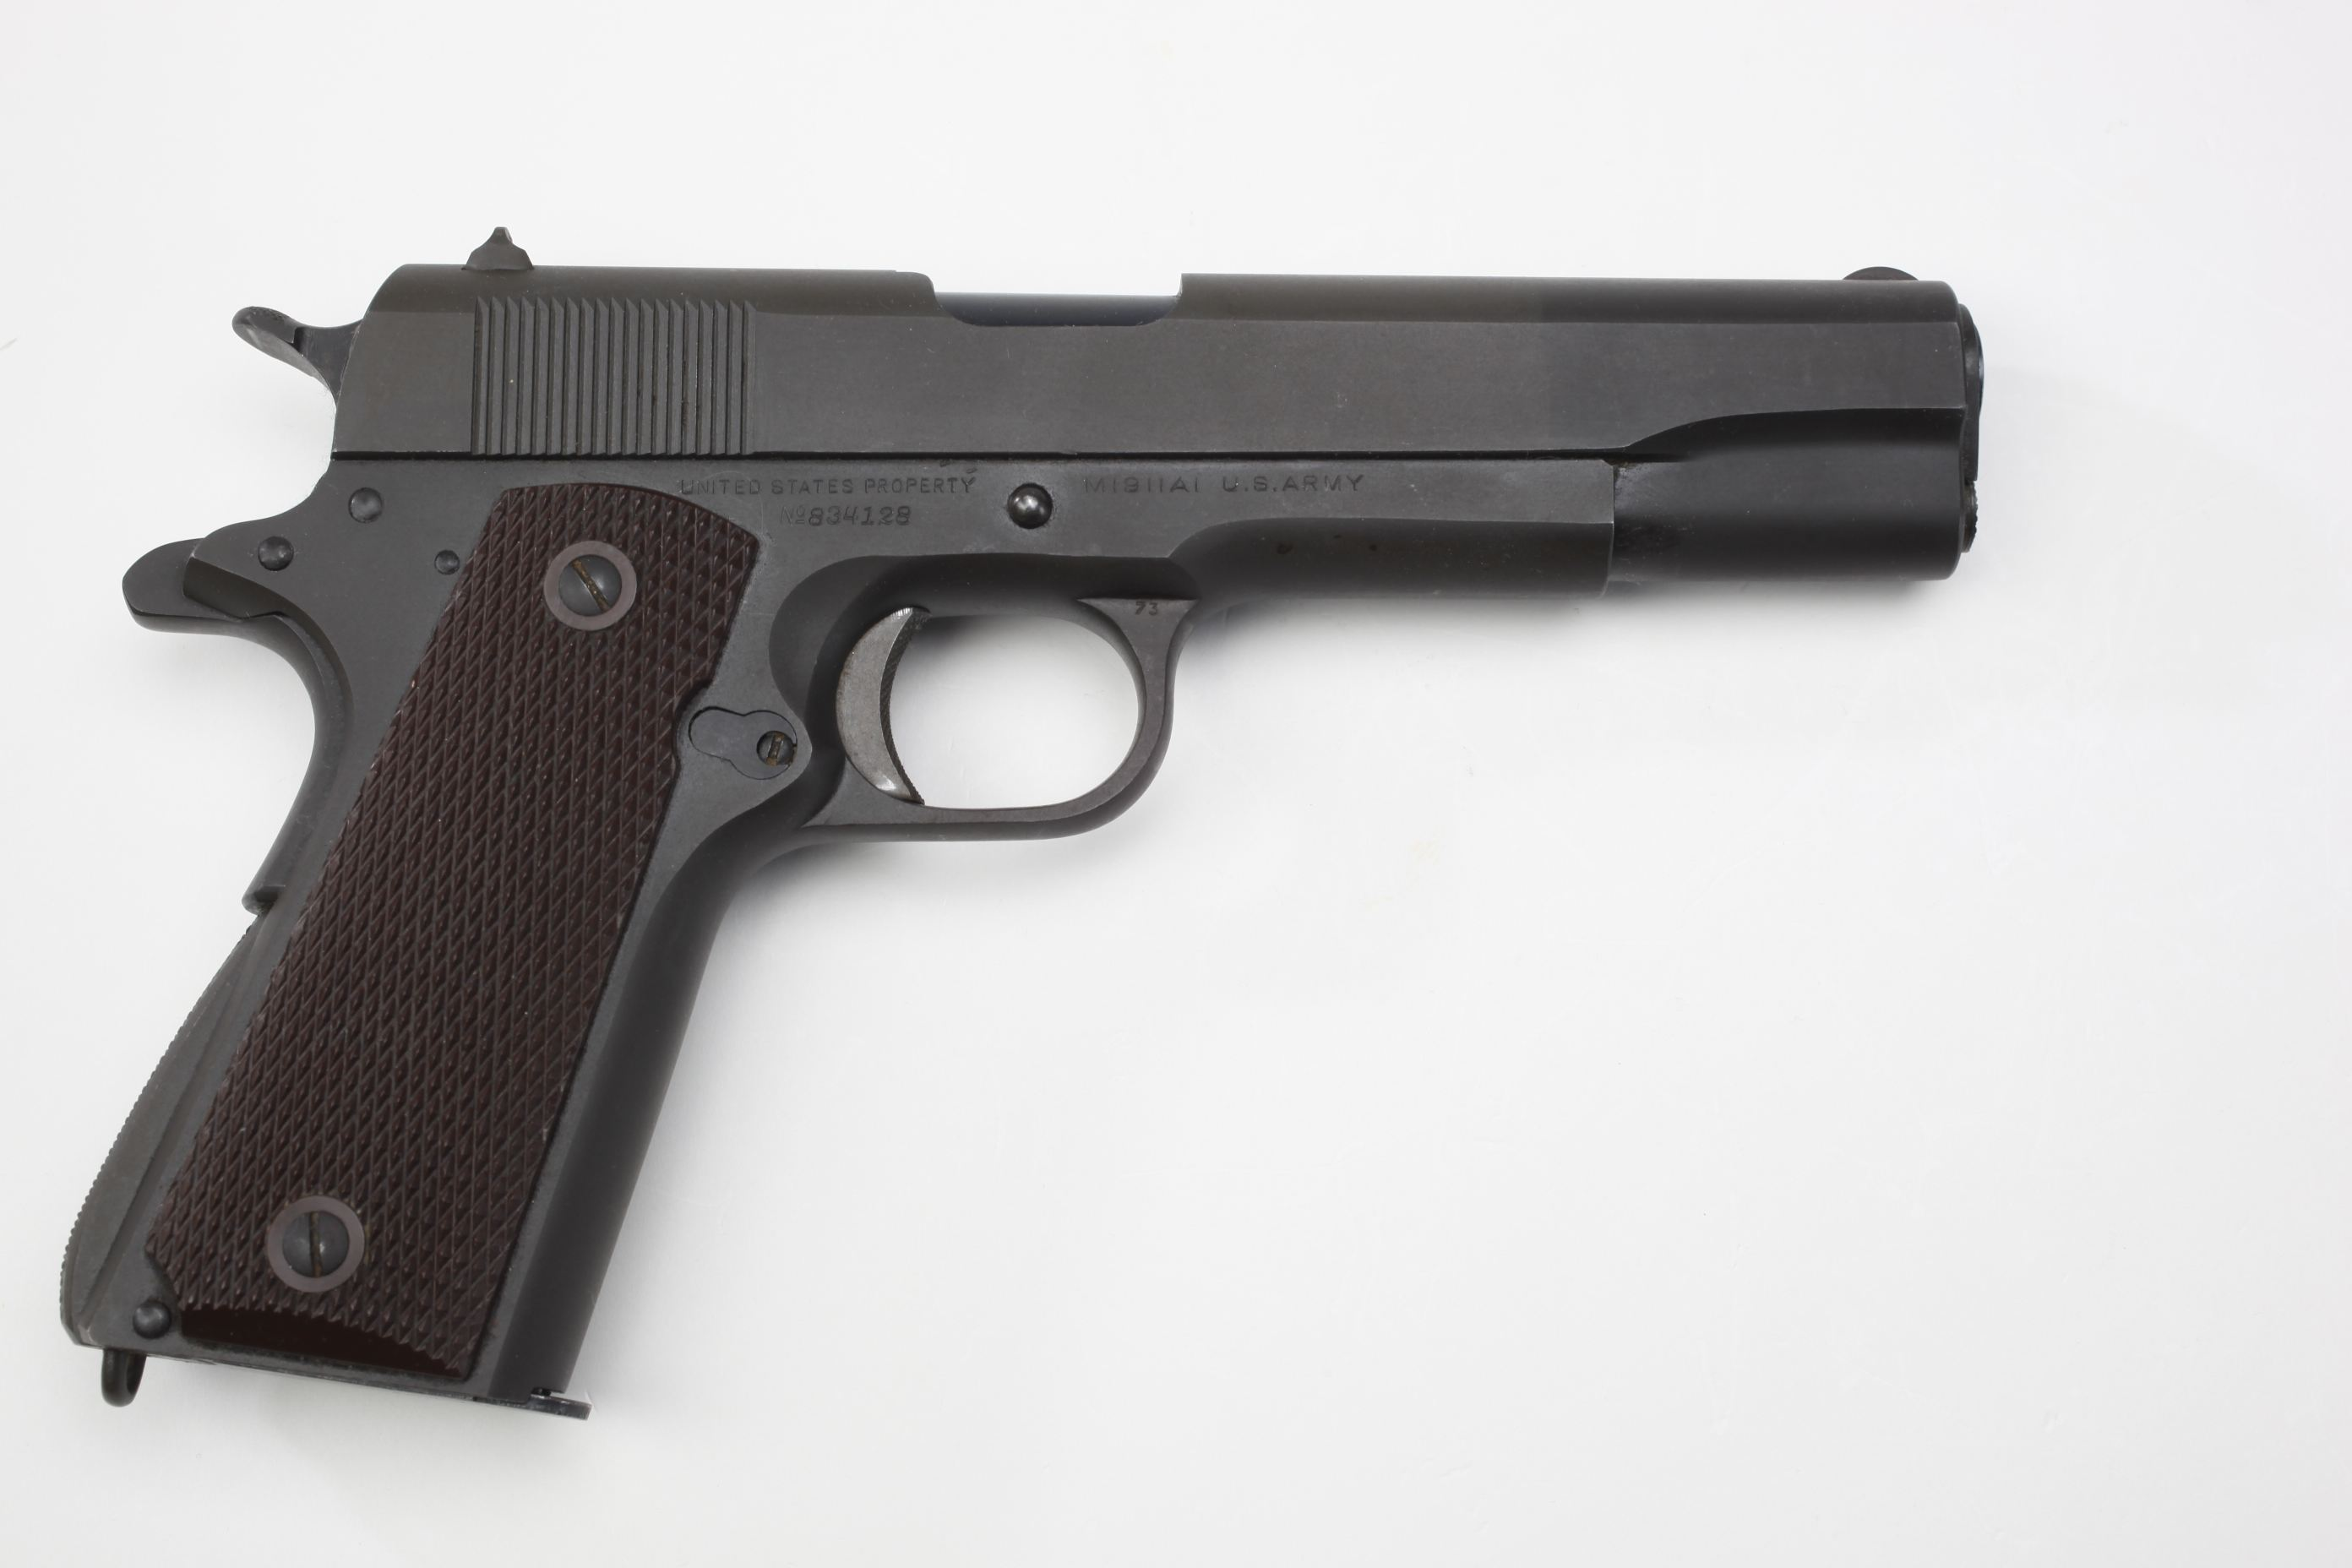 Admiral Sir A. B. Cunningham's U.S./Colt M1911A1 Semi-Automatic General Officer's Pistol